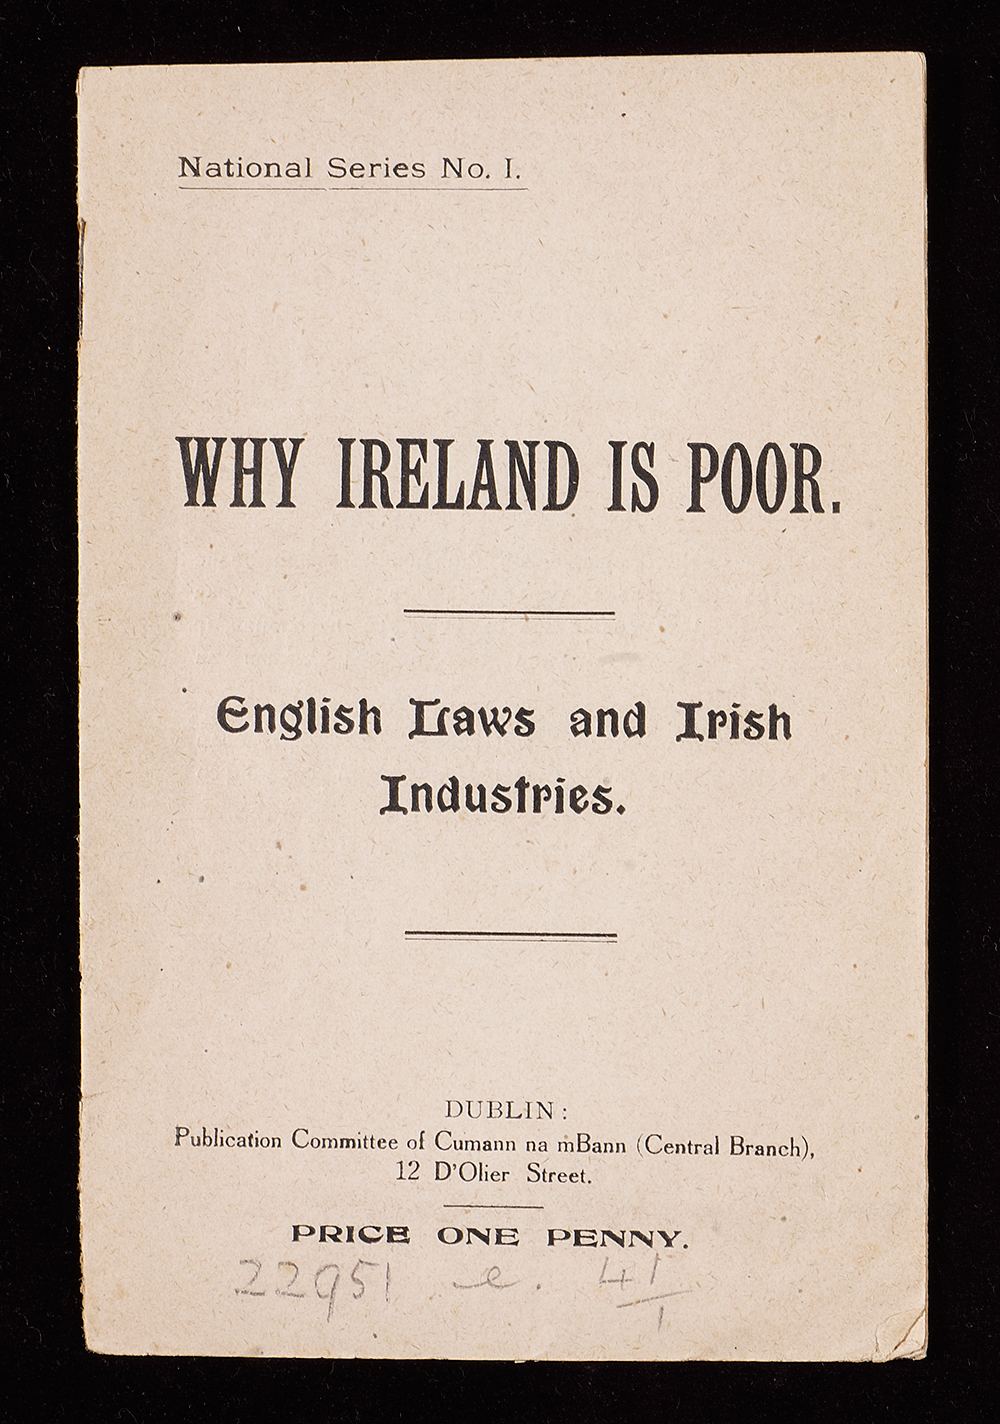 Why Ireland is poor pamphlet